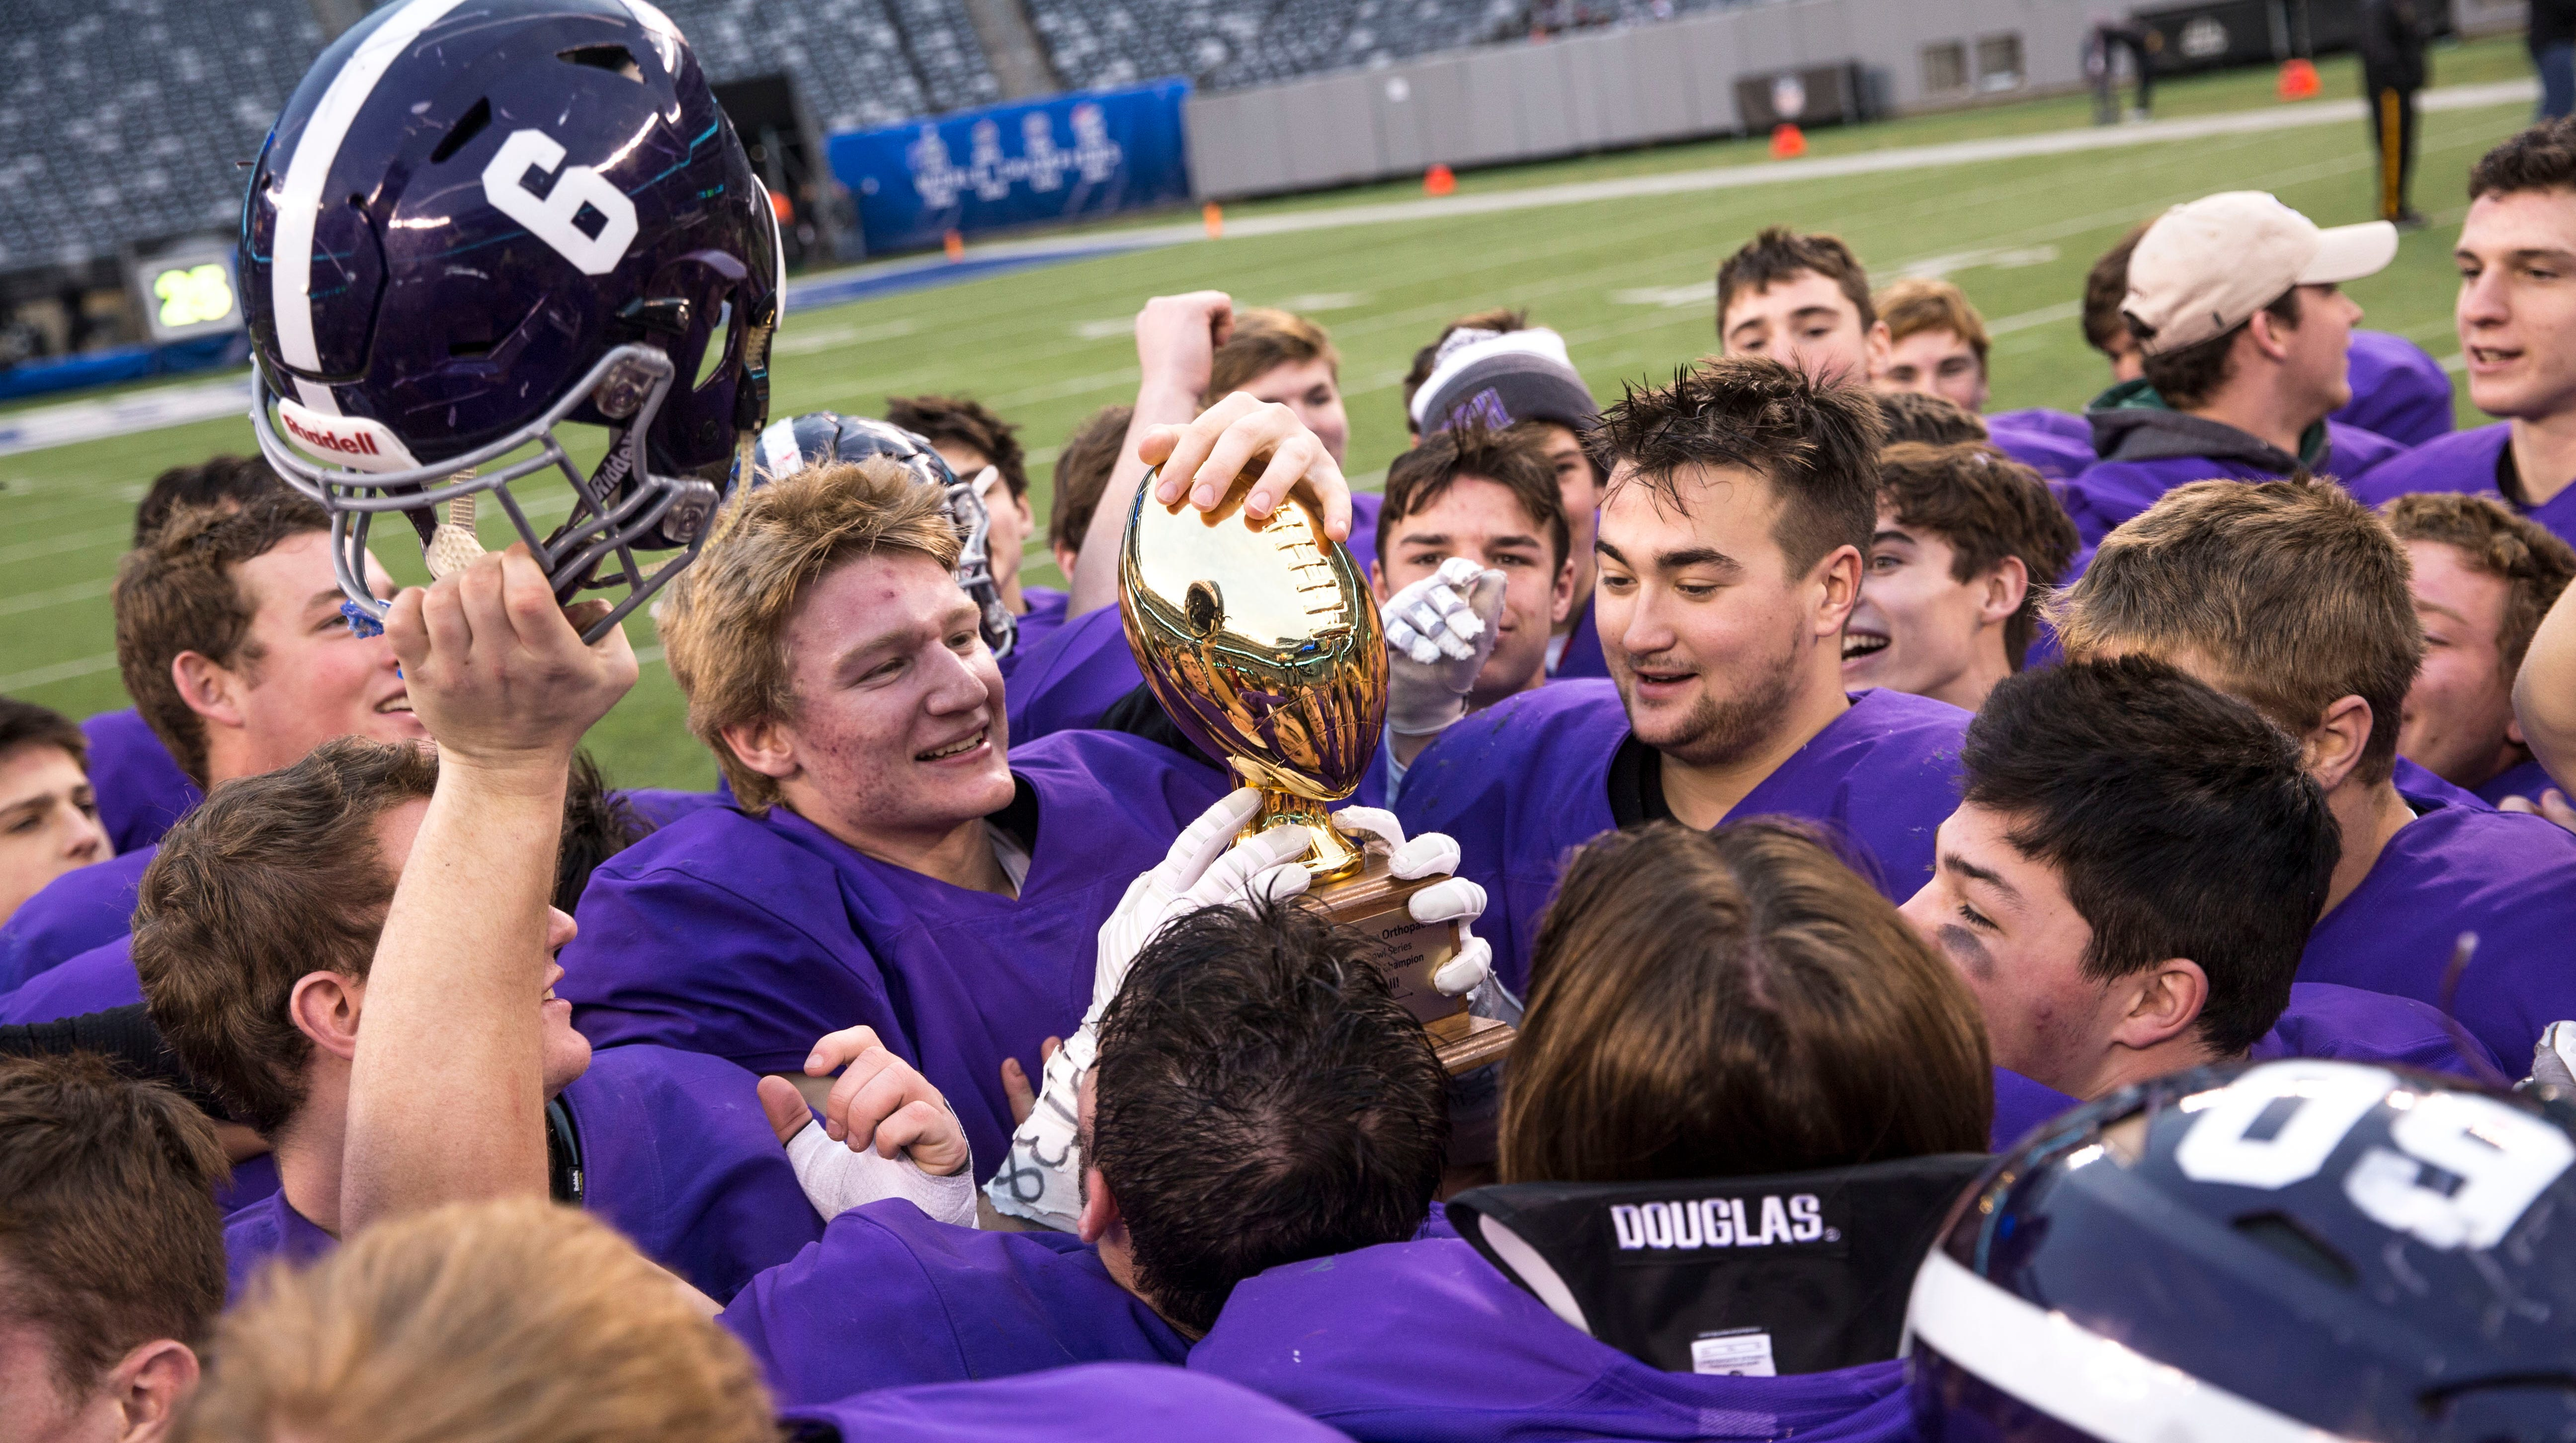 Rumson-Fair Haven's Ian O'Connor and Ethan Ardolino celebrate the win. Rumson-Fair Haven defeats Woodrow Wilson in the NJSIAA South Group III Bowl Game at MetLife Stadium.  East Rutherford, NJ Saturday, December 1, 2018